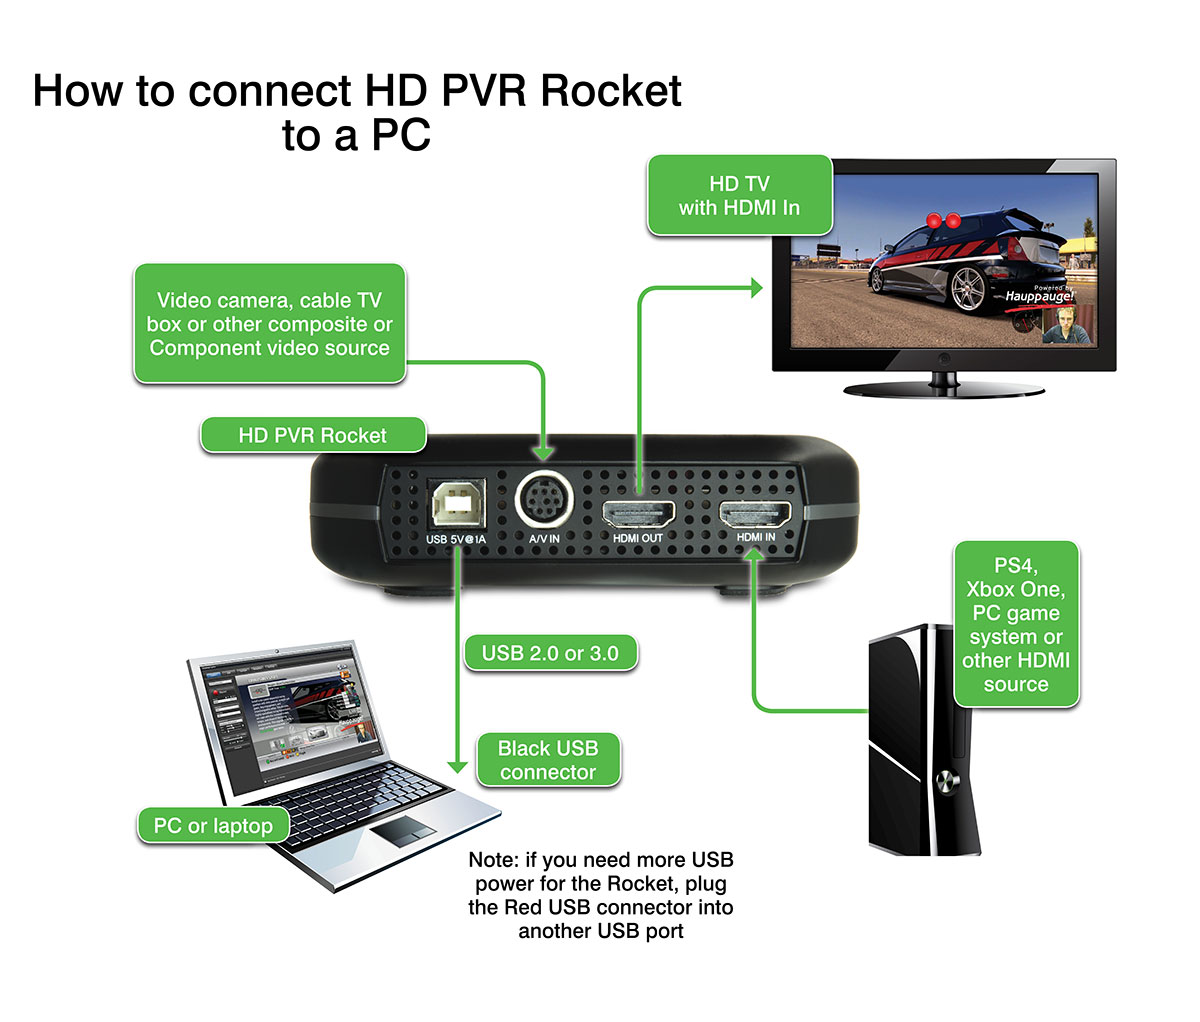 HD PVR Rocket PC connection diagram